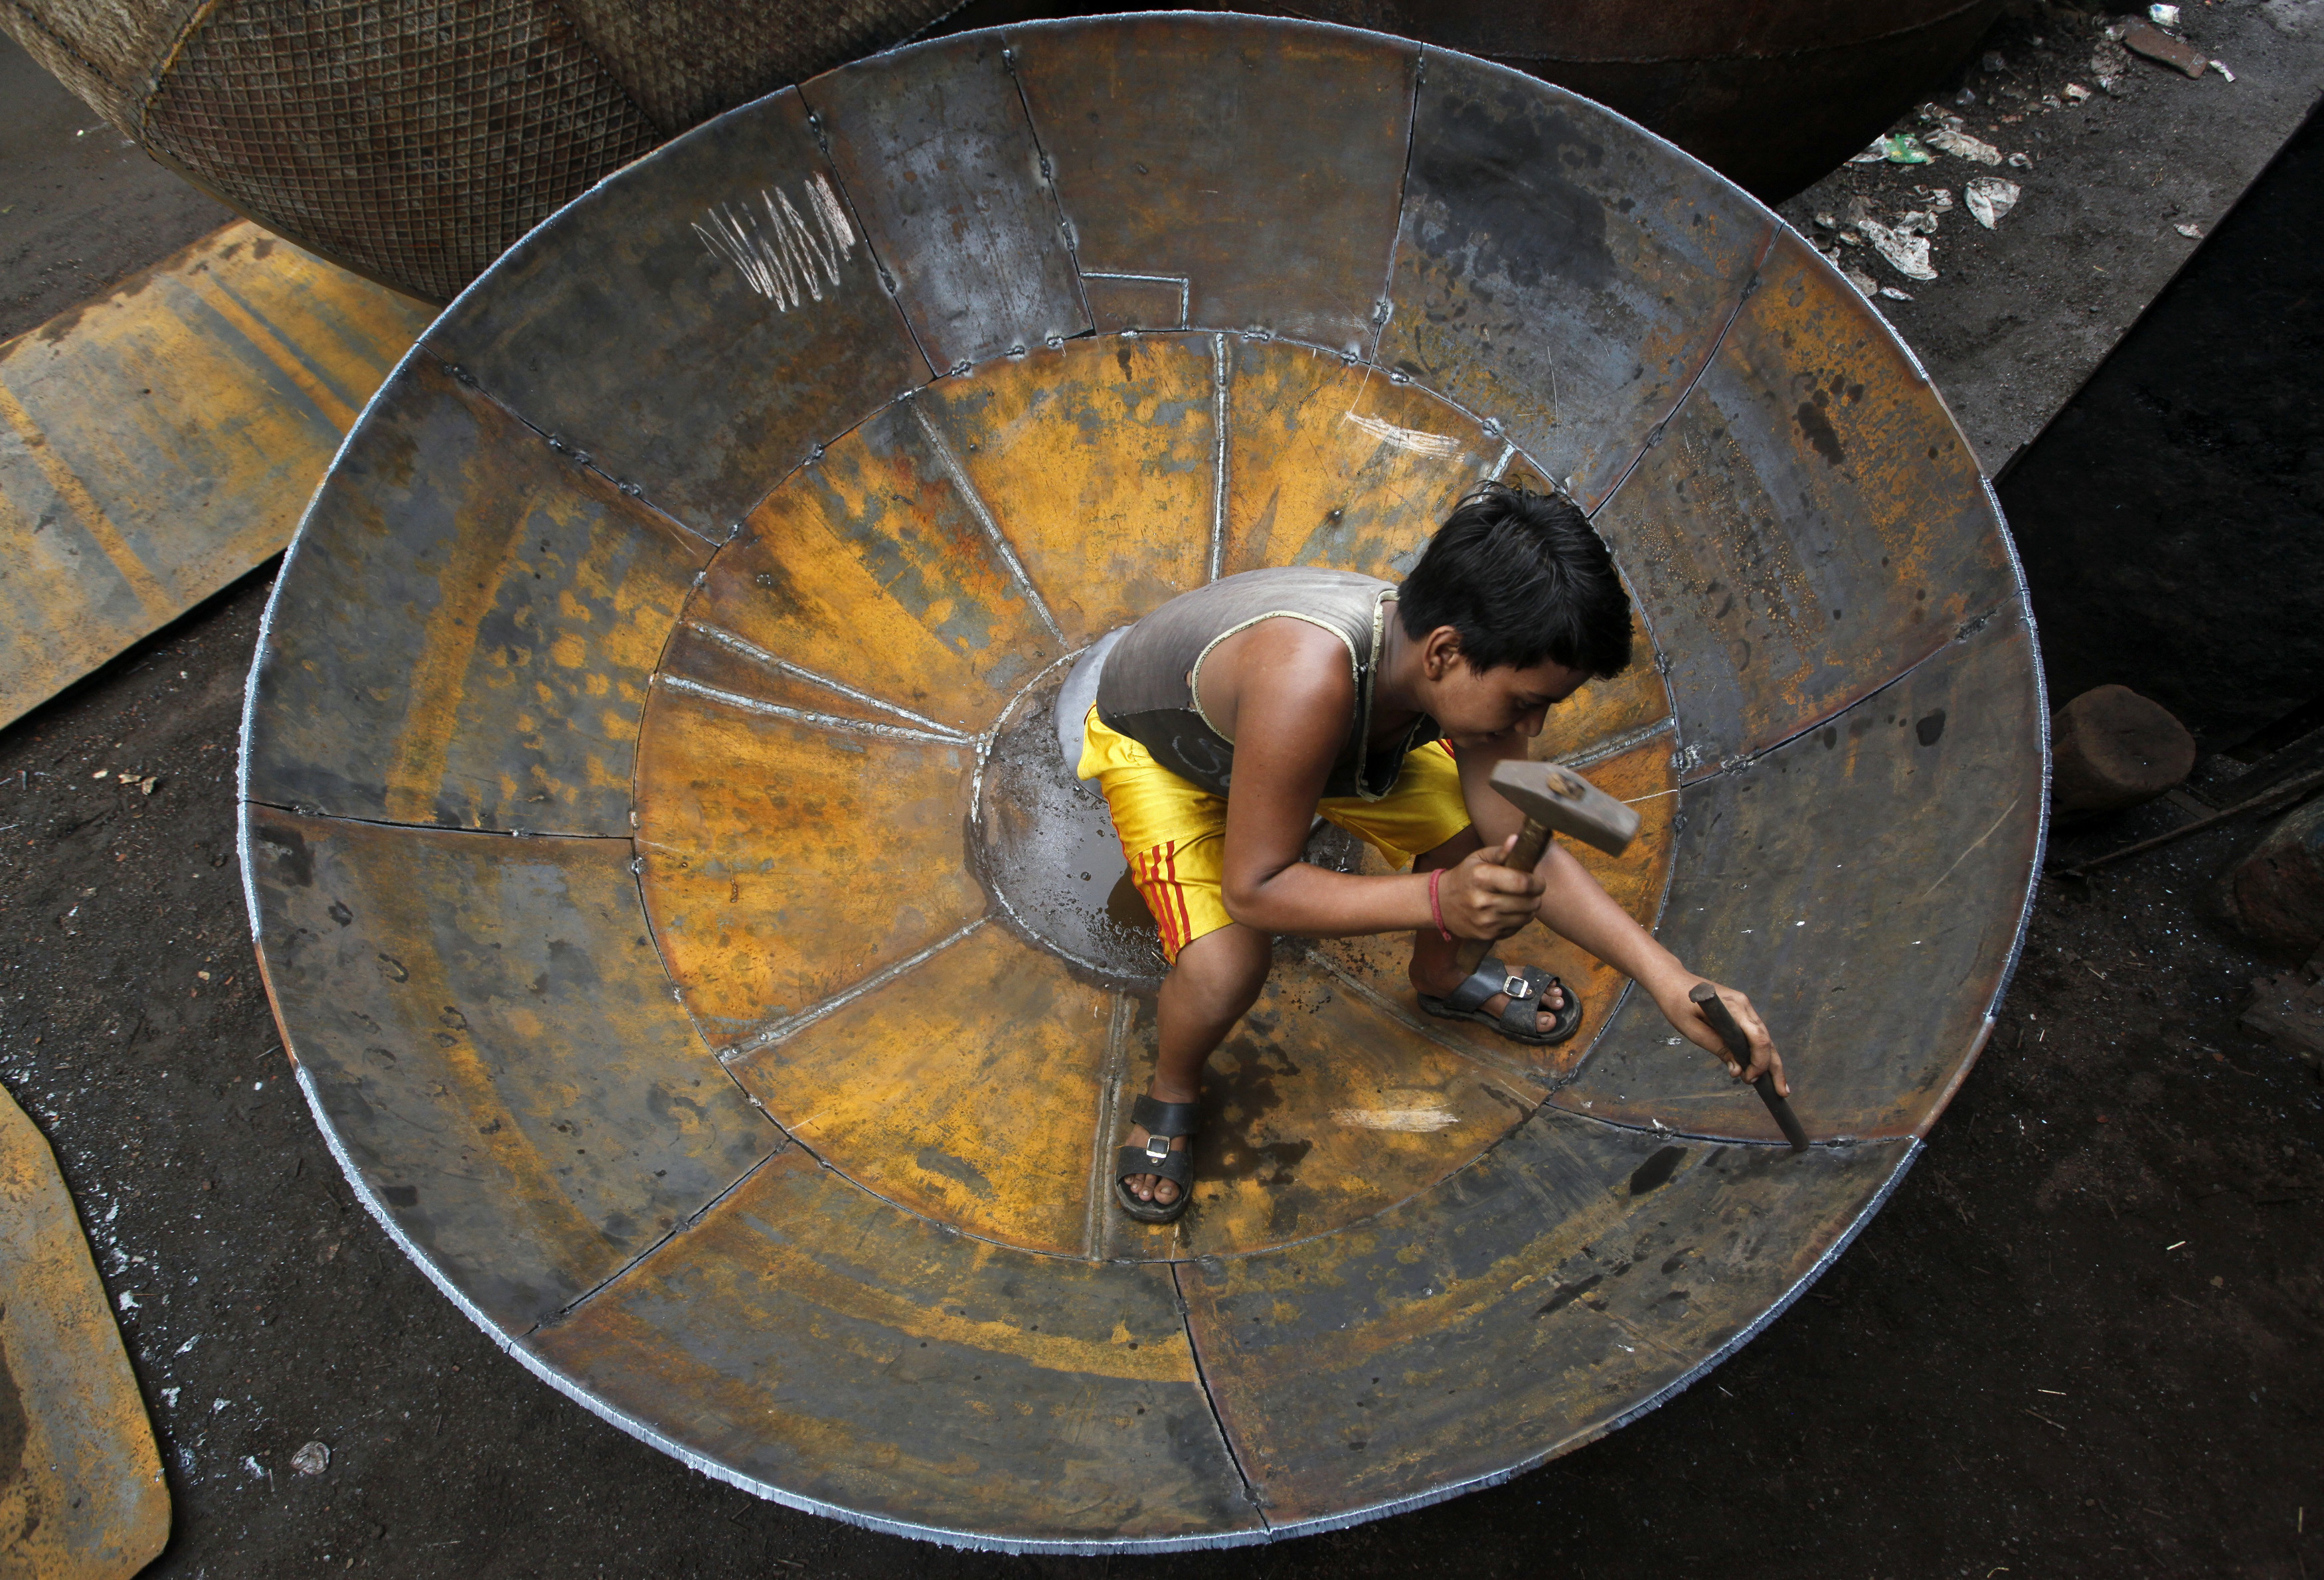 A boy checks the joints of a giant utensil at an iron utensils manufacturing unit in Kolkata July 12, 2012. India's industrial output picked up more than expected in May, bolstering the case for the central bank to keep interest rates high at its next policy meeting as a slow start to the monsoon puts pressure on inflation, especially food prices. REUTERS/Rupak De Chowdhuri (INDIA - Tags: SOCIETY BUSINESS) - GM1E87C1EUO01